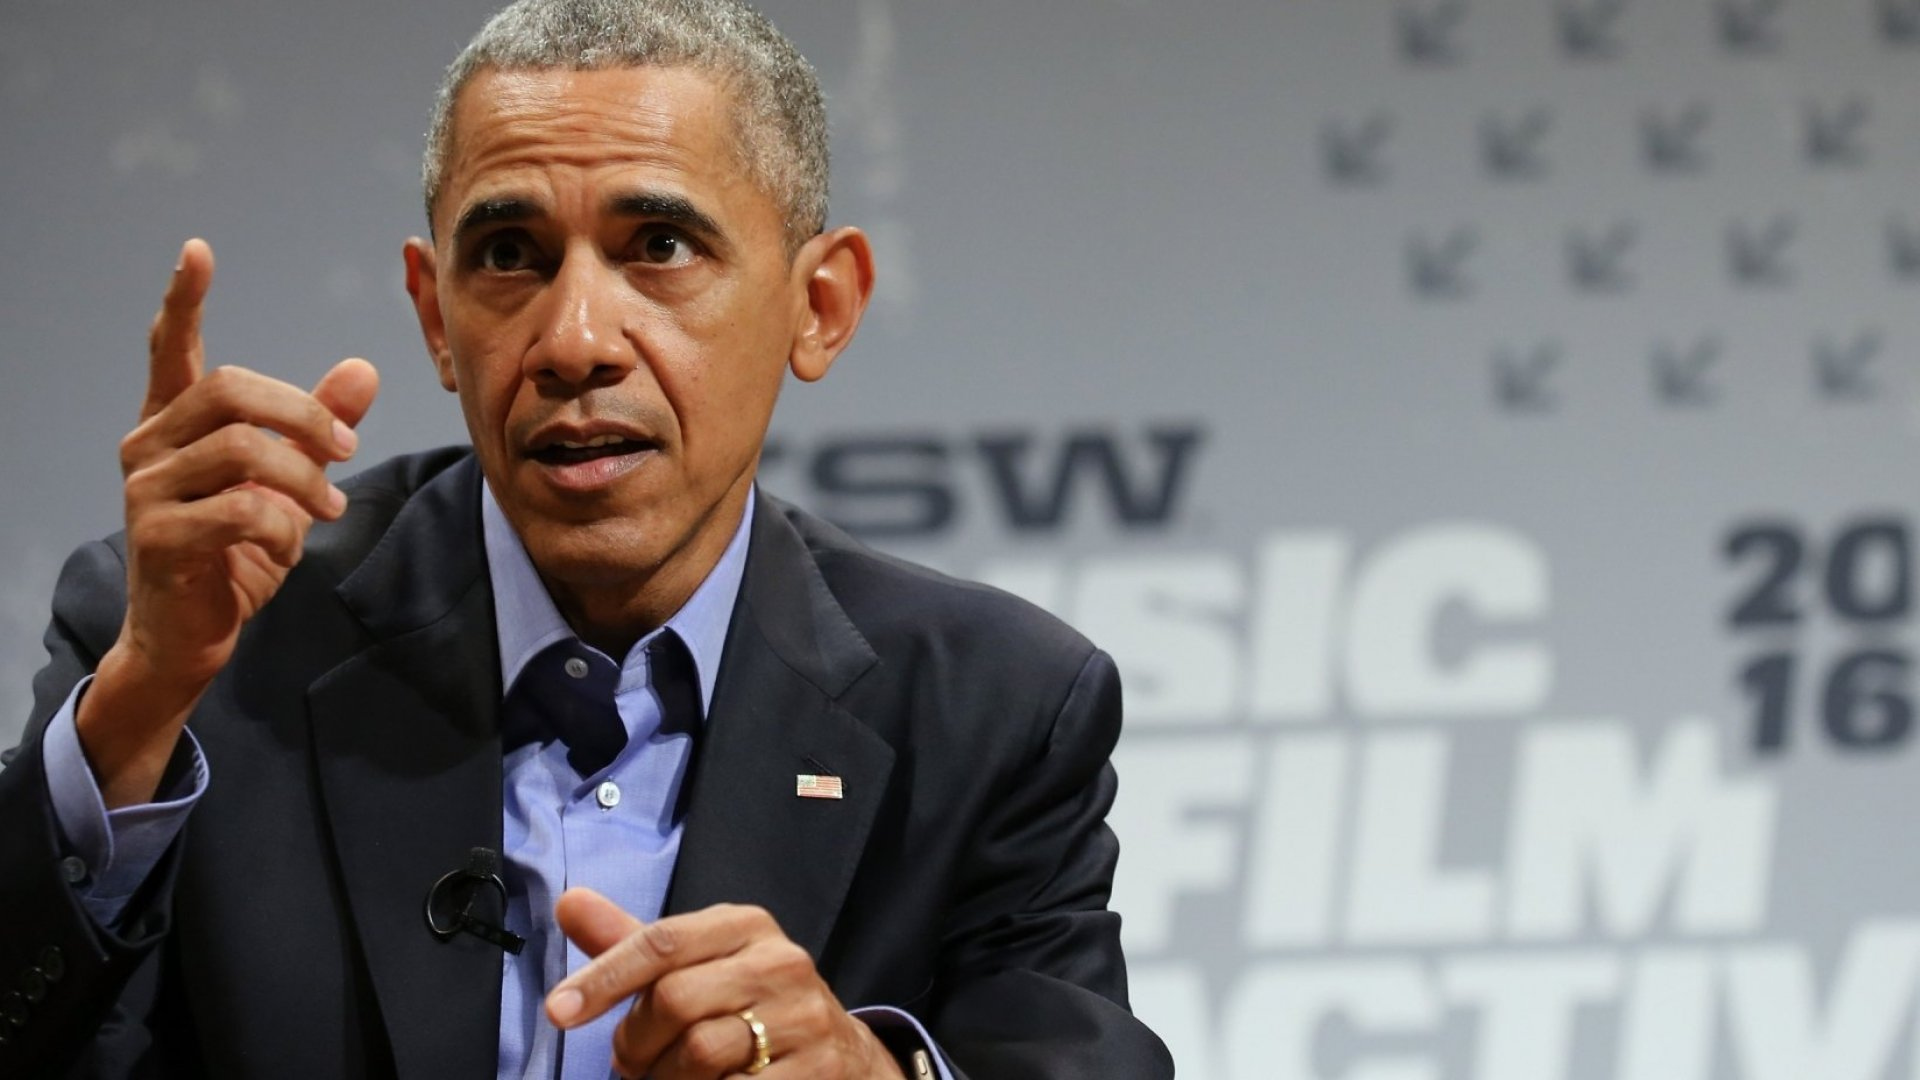 Obama Drops Into SXSW to Recruit for His Special Ops Tech Team